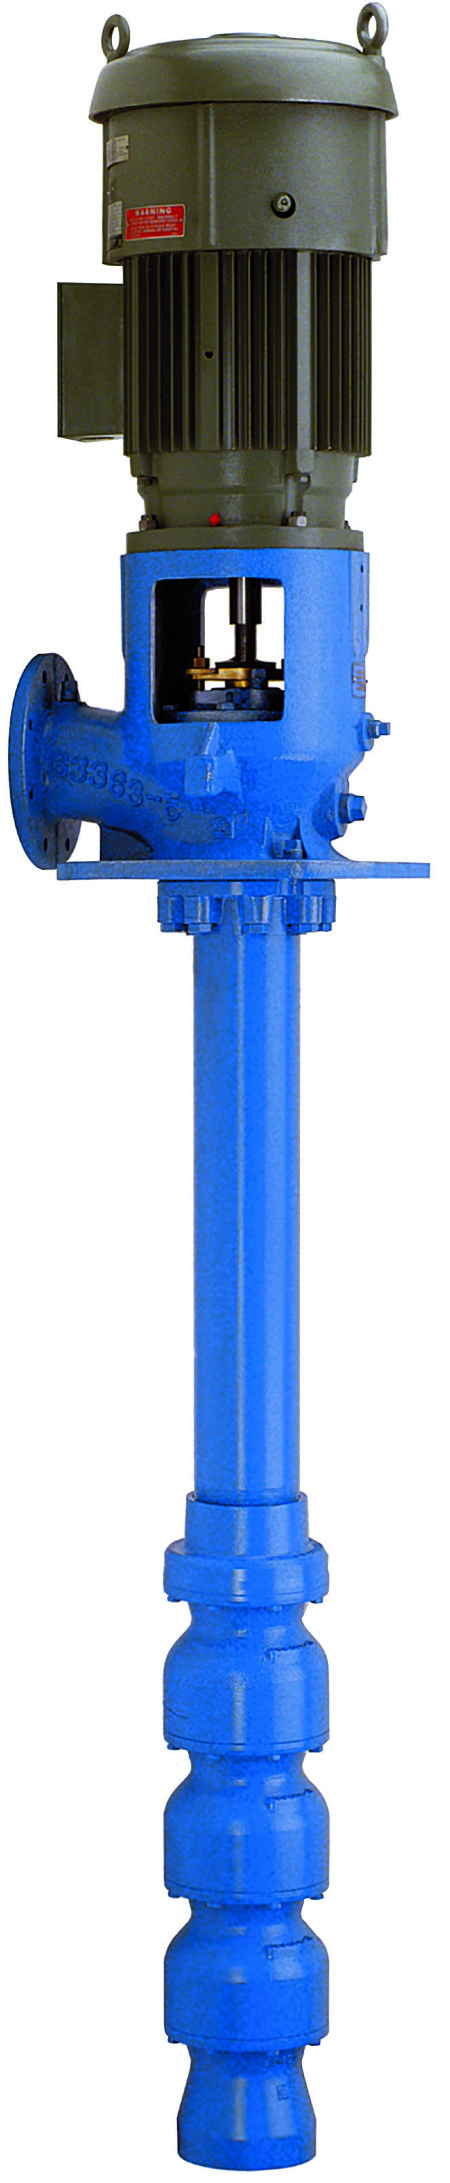 medium resolution of dwt deep well turbine borehole pumps